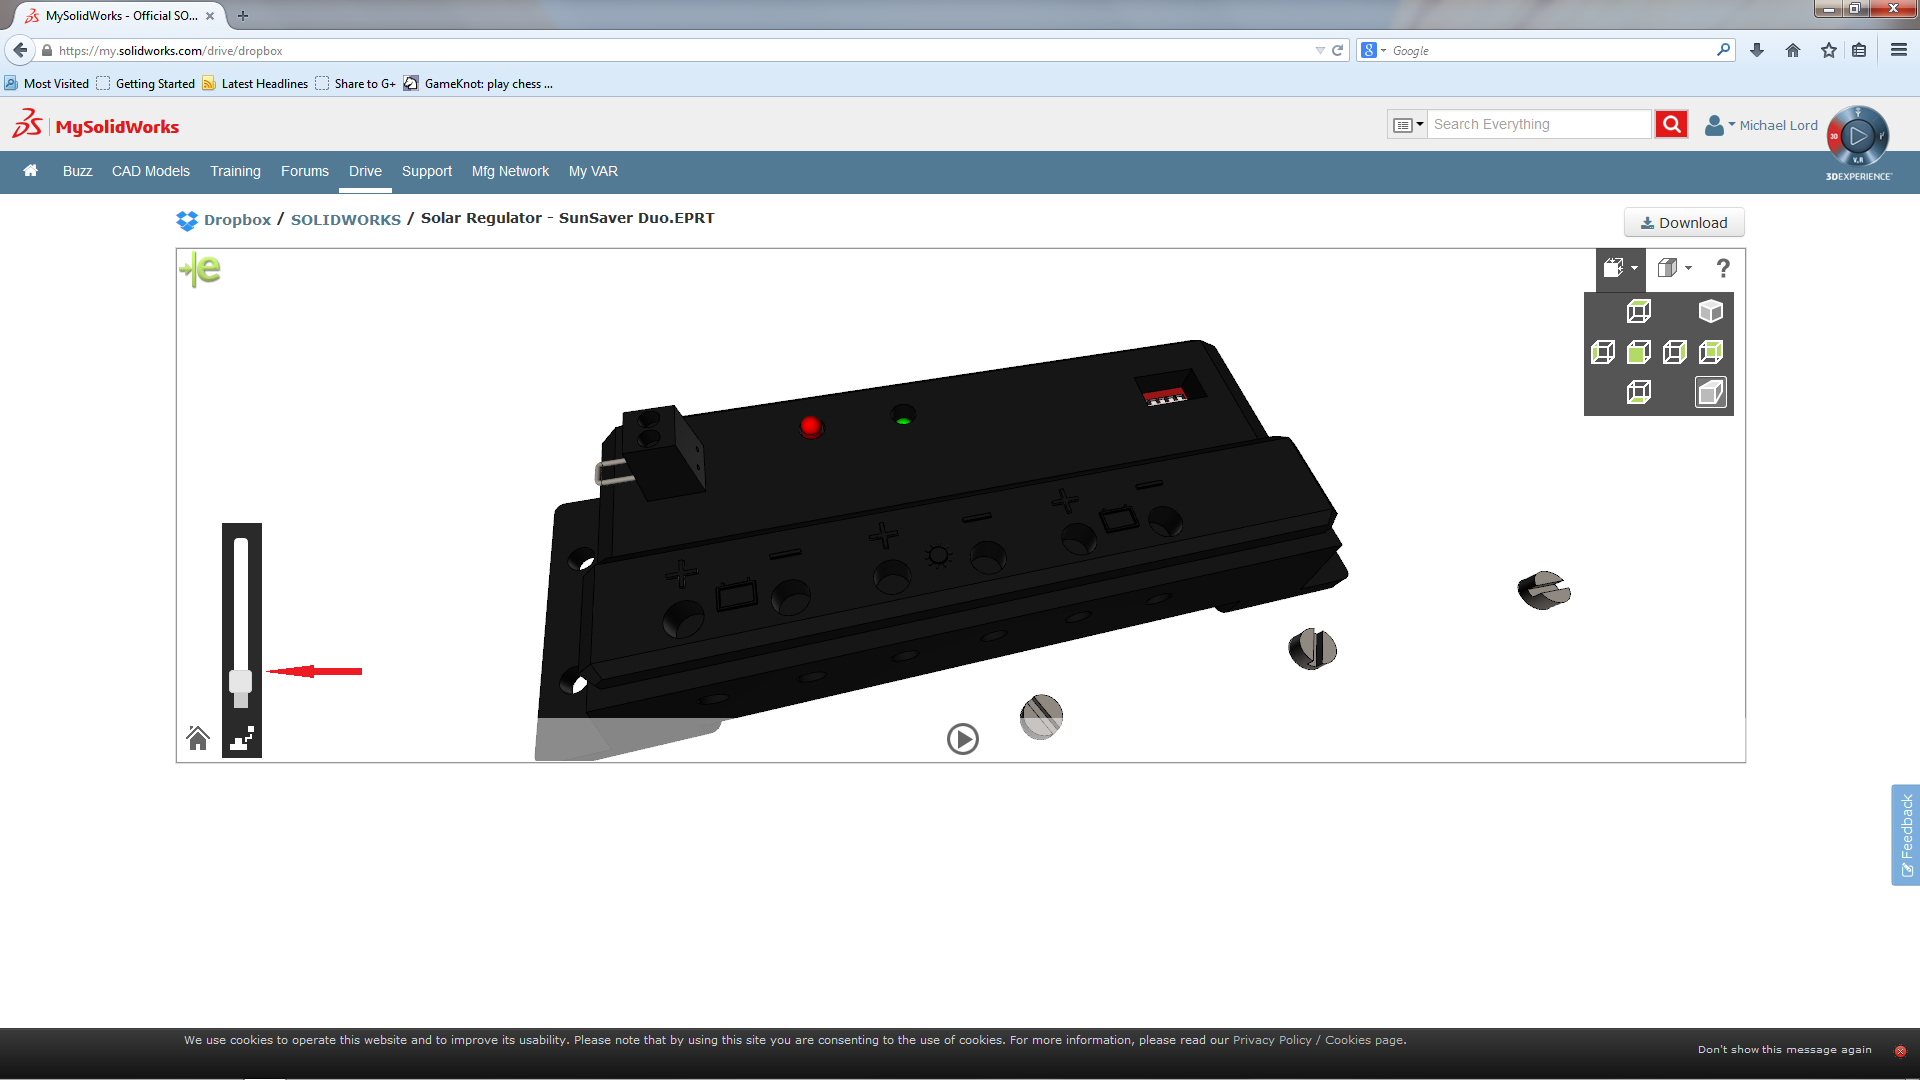 My SolidWorks Drive Incorporates eDrawings – Dropbox & Google Drive